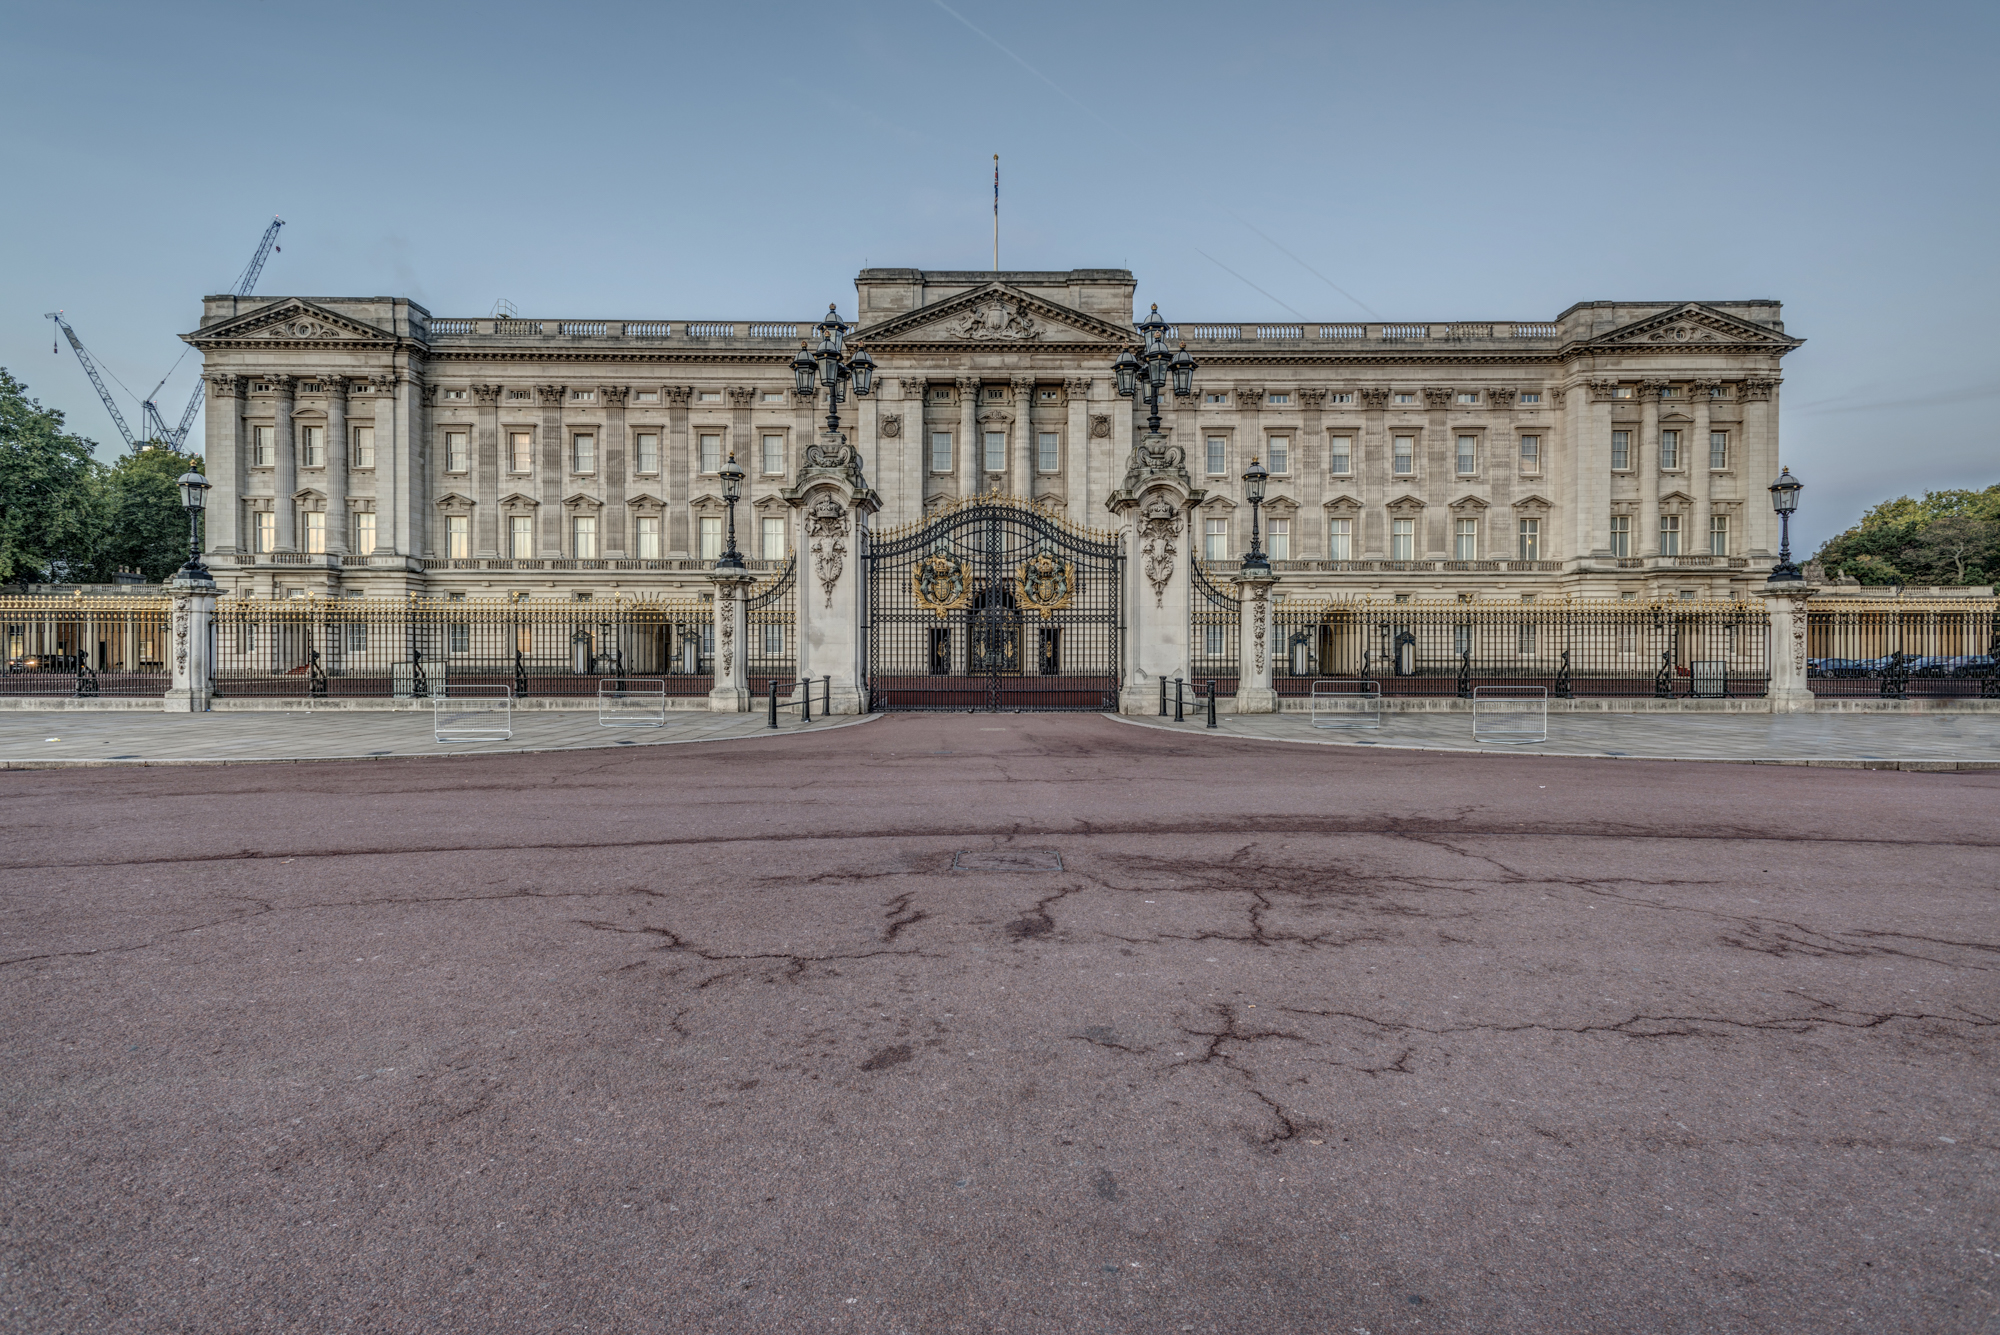 Buckingham Palace - the London residence of the Queen